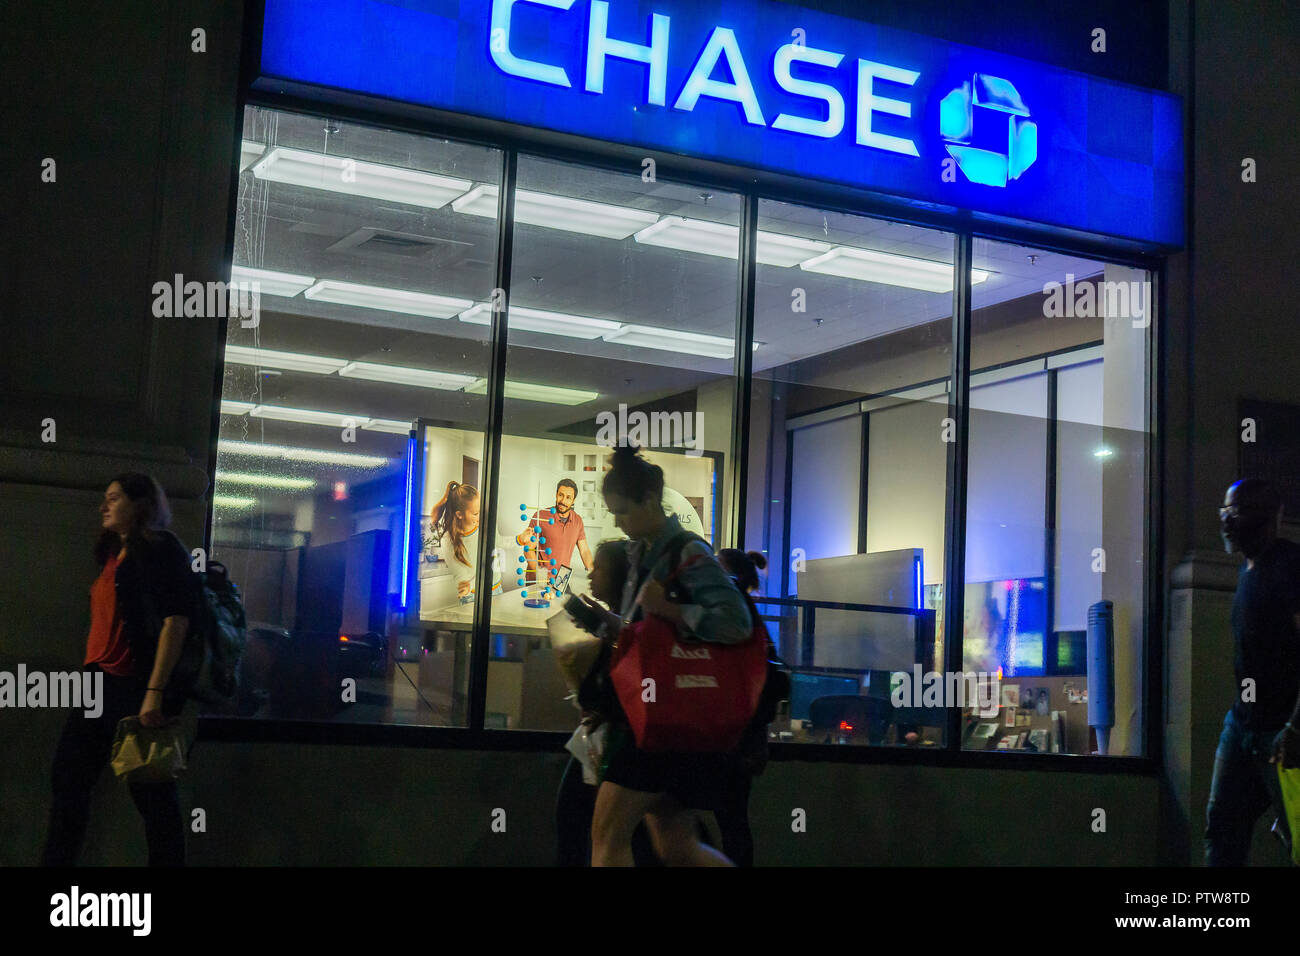 A branch of JPMorgan Chase bank in New York on Tuesday, October 9, 2018. JPMorgan Chase is scheduled to report their third-quarter earnings on October 12 prior to the bell. (© Richard B. Levine) - Stock Image